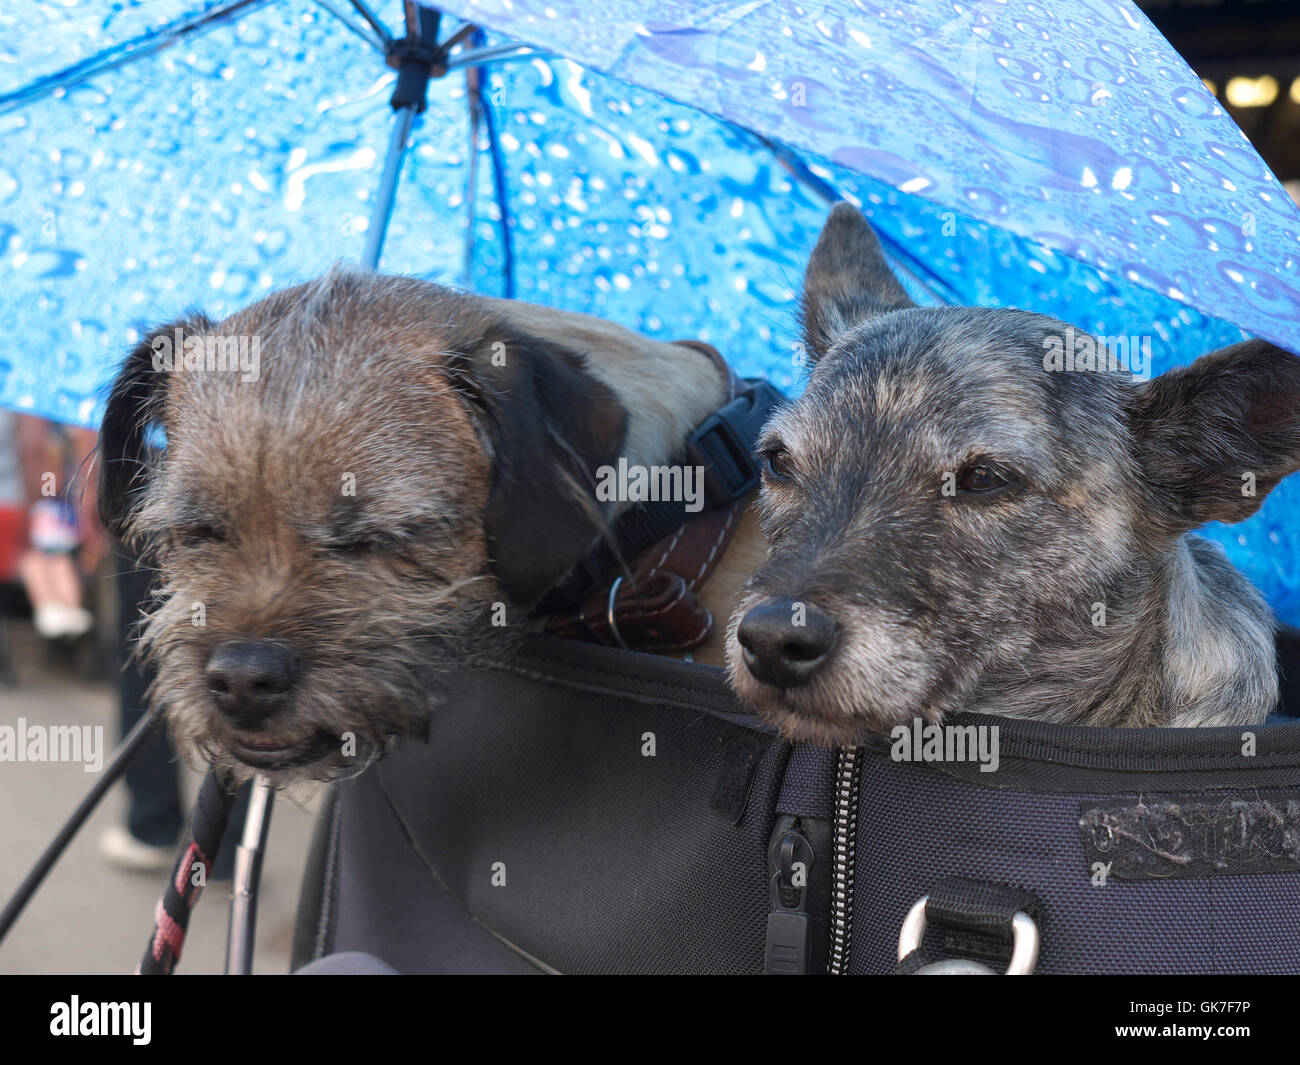 Two dogs nice and snug on the back of a Honda Goldwing during Mablethorpe's annual bike night - Stock Image